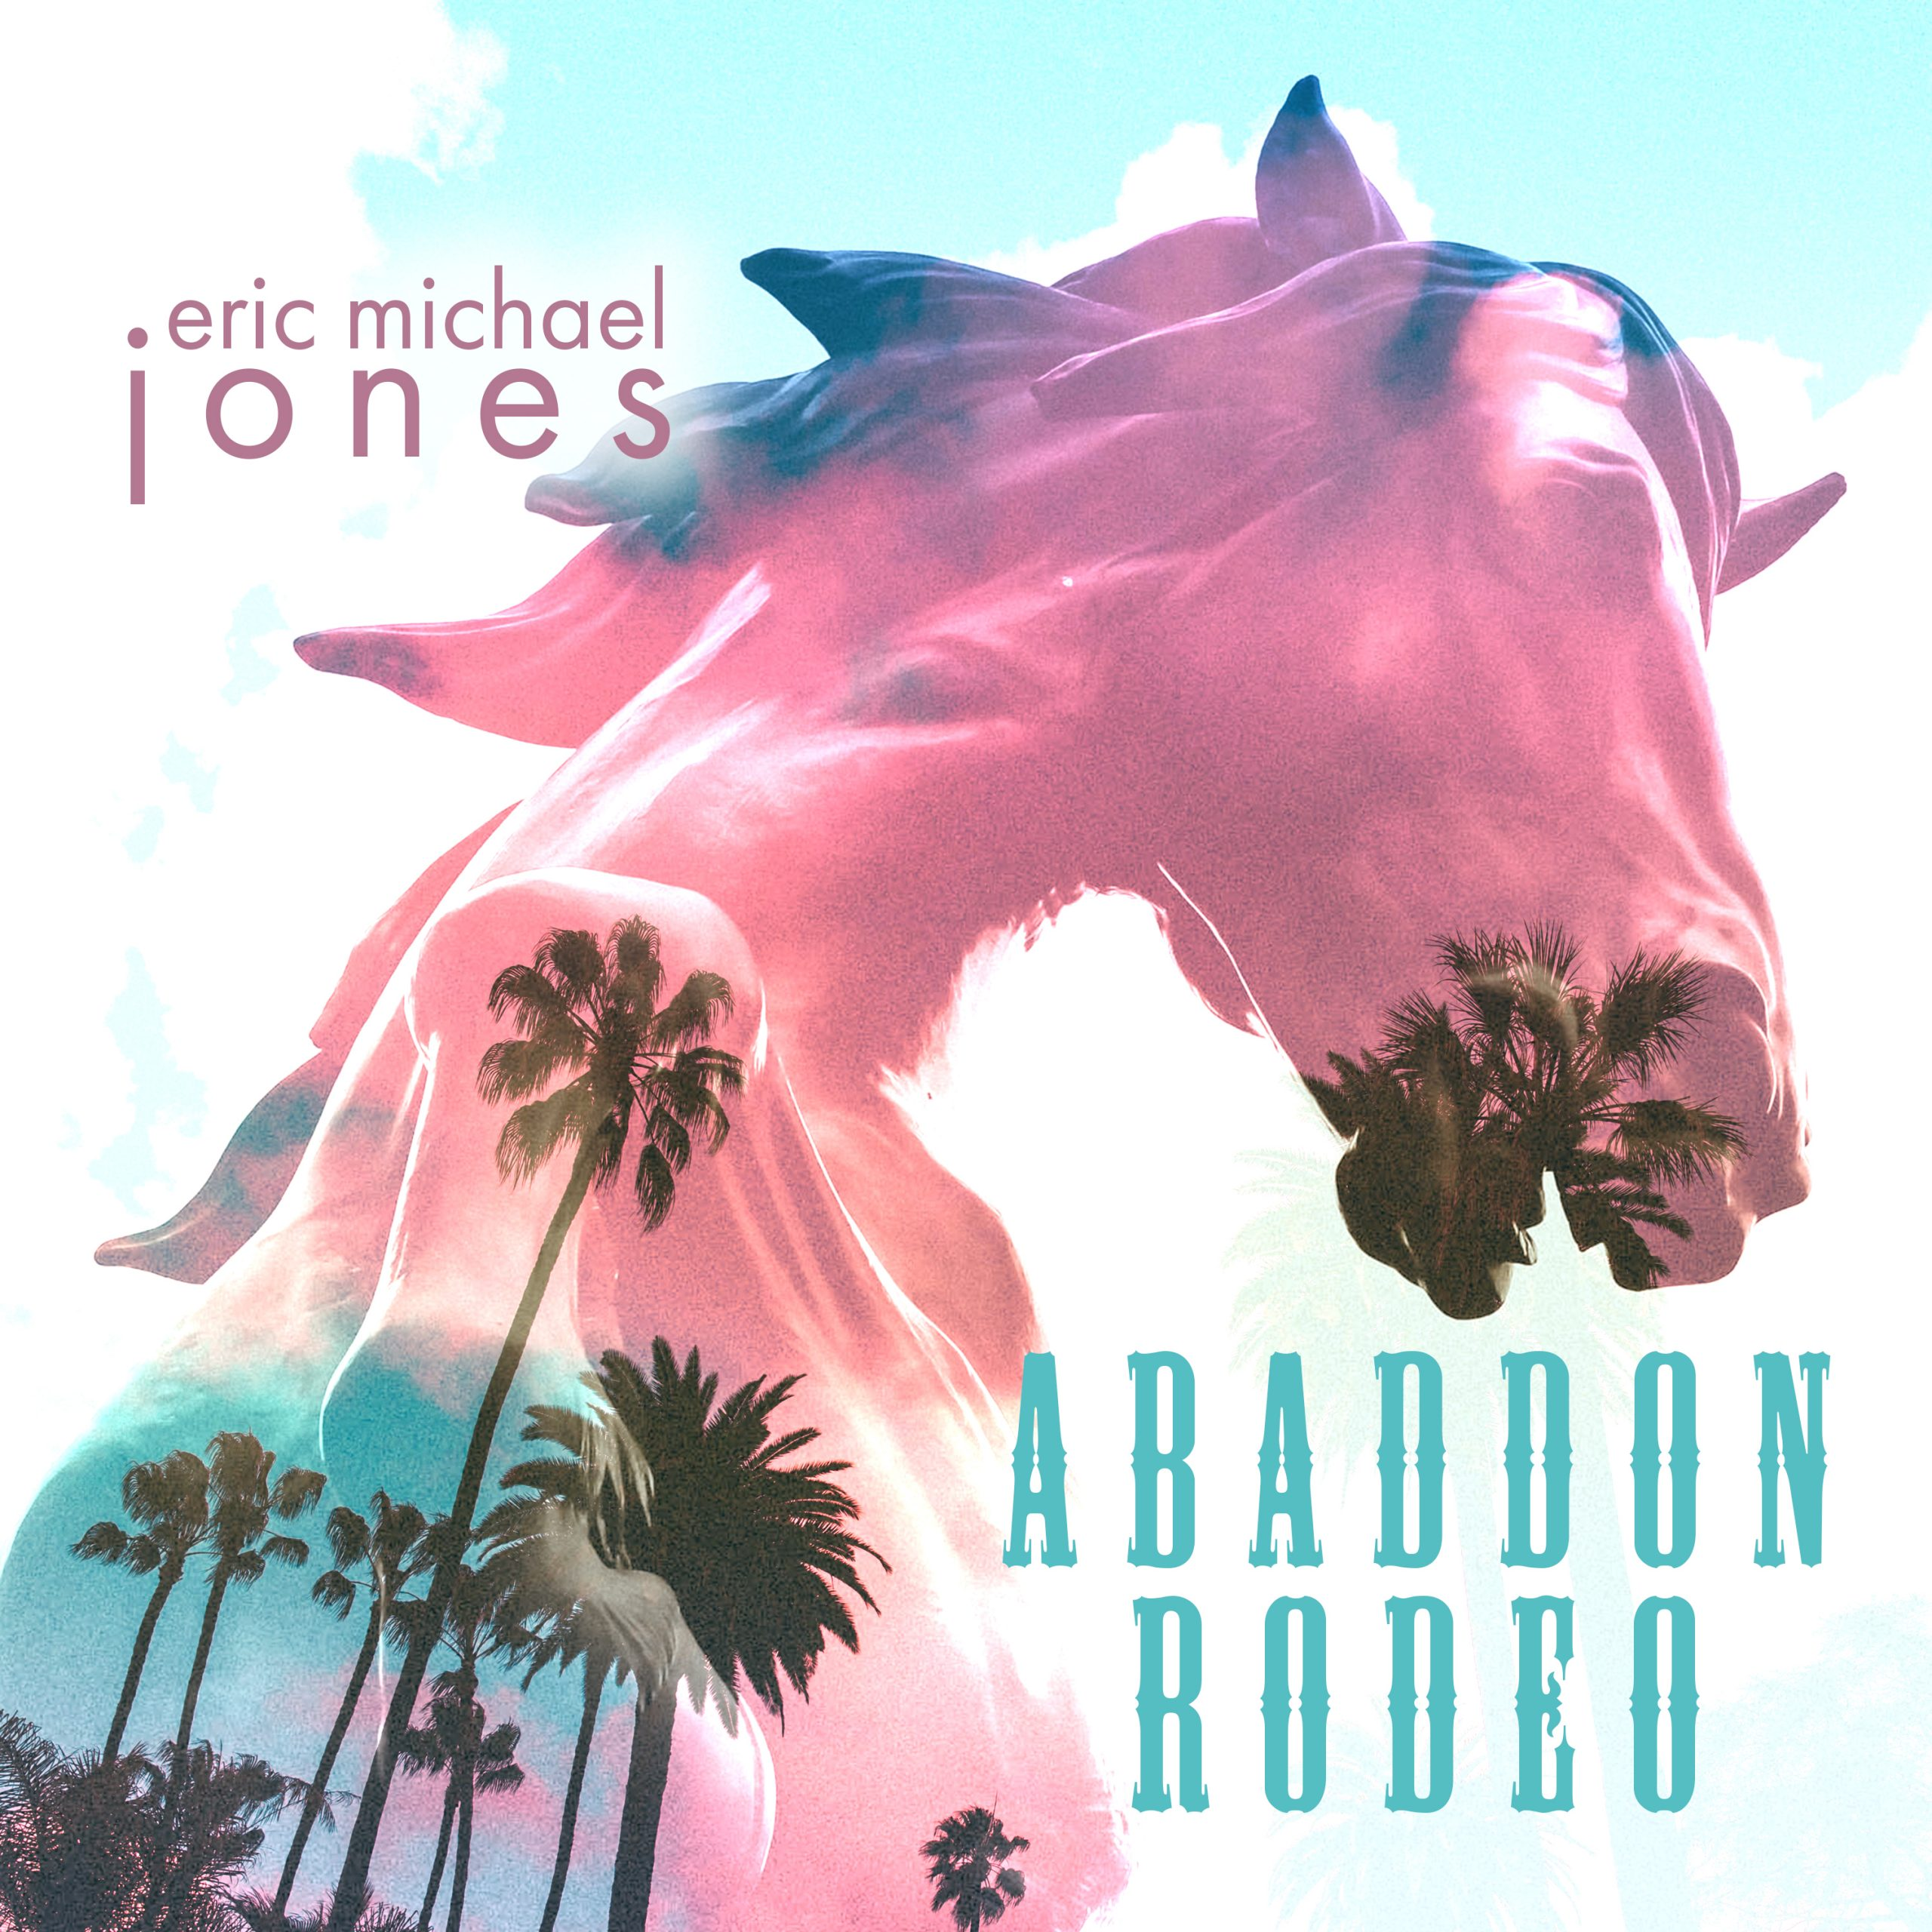 Cover art for Abbadon Rodeo, showing the figure of a horse superimposed with palm trees